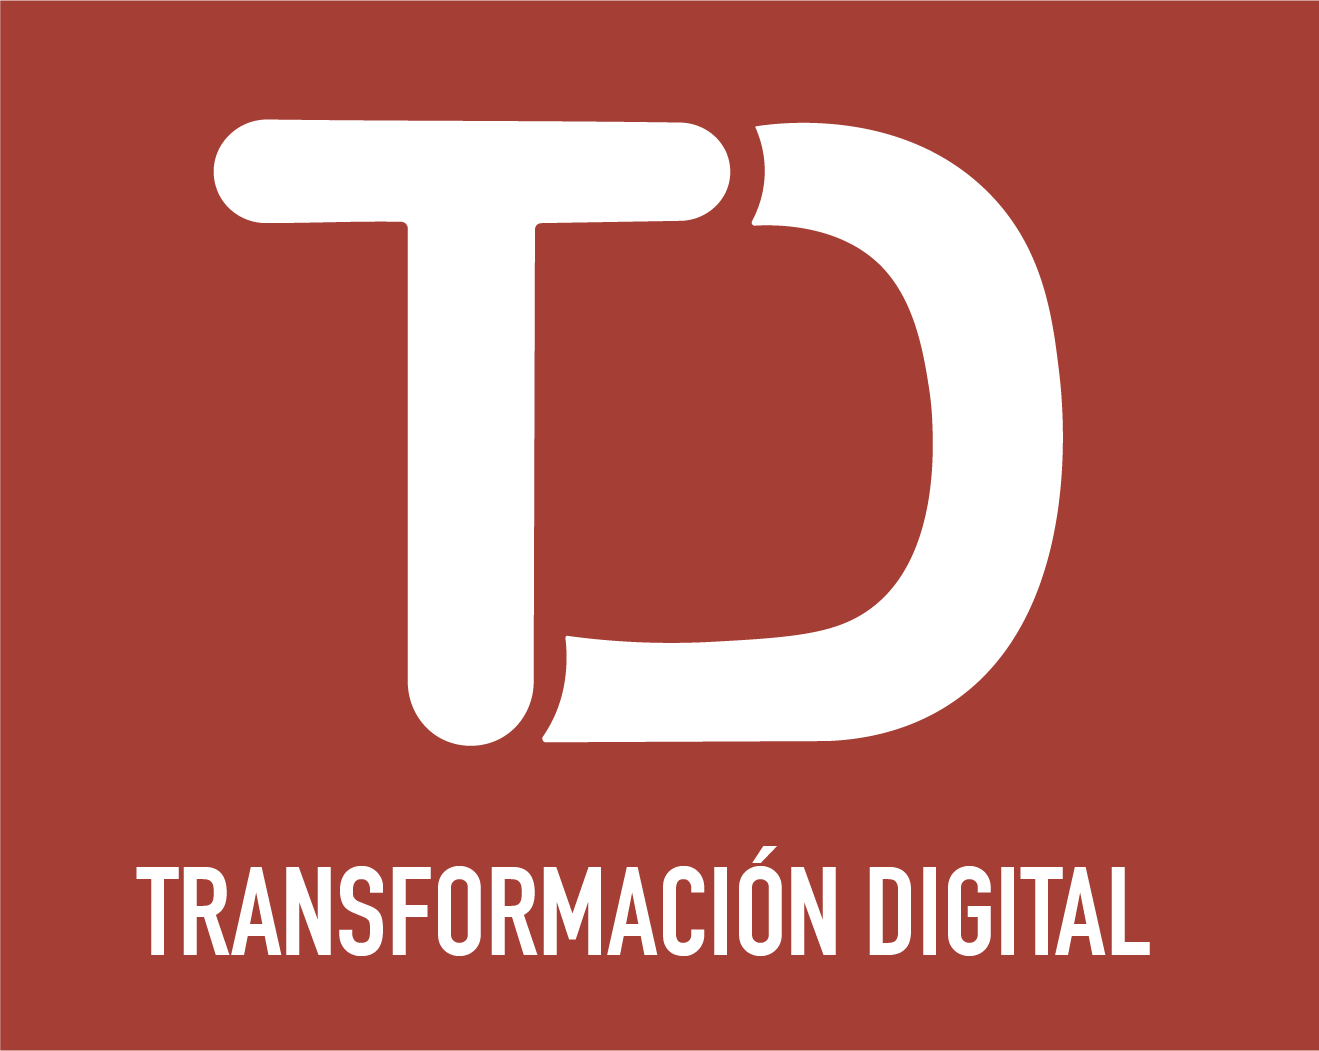 Logo de Transformación Digital